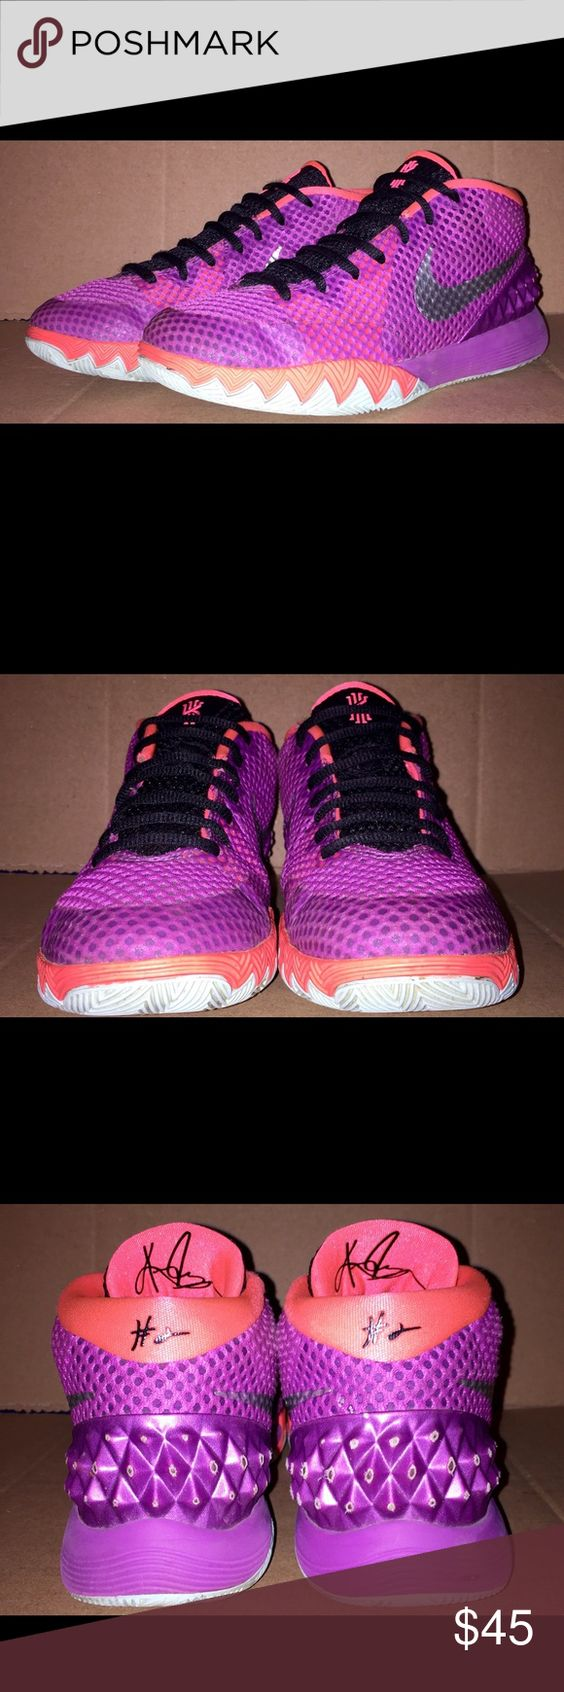 💥COMFY💥Nike Kyrie 2 Youth Basketball Shoes sz 5y Nike Kyrie 1's blends lightweight, zonal support w/ responsive cushioning, while the shoes design supports fwd movement so youre ready to move. Hyperfuse construction optimizes lightweight breathability & durable support. Areas of open mesh provide breathability. Foam midsole provides responsive cushioning for quick takeoff. Modified herringbone outsole pattern. 3 wide outsole channels allow for forefoot flex. Spikes on back of shoes have a…